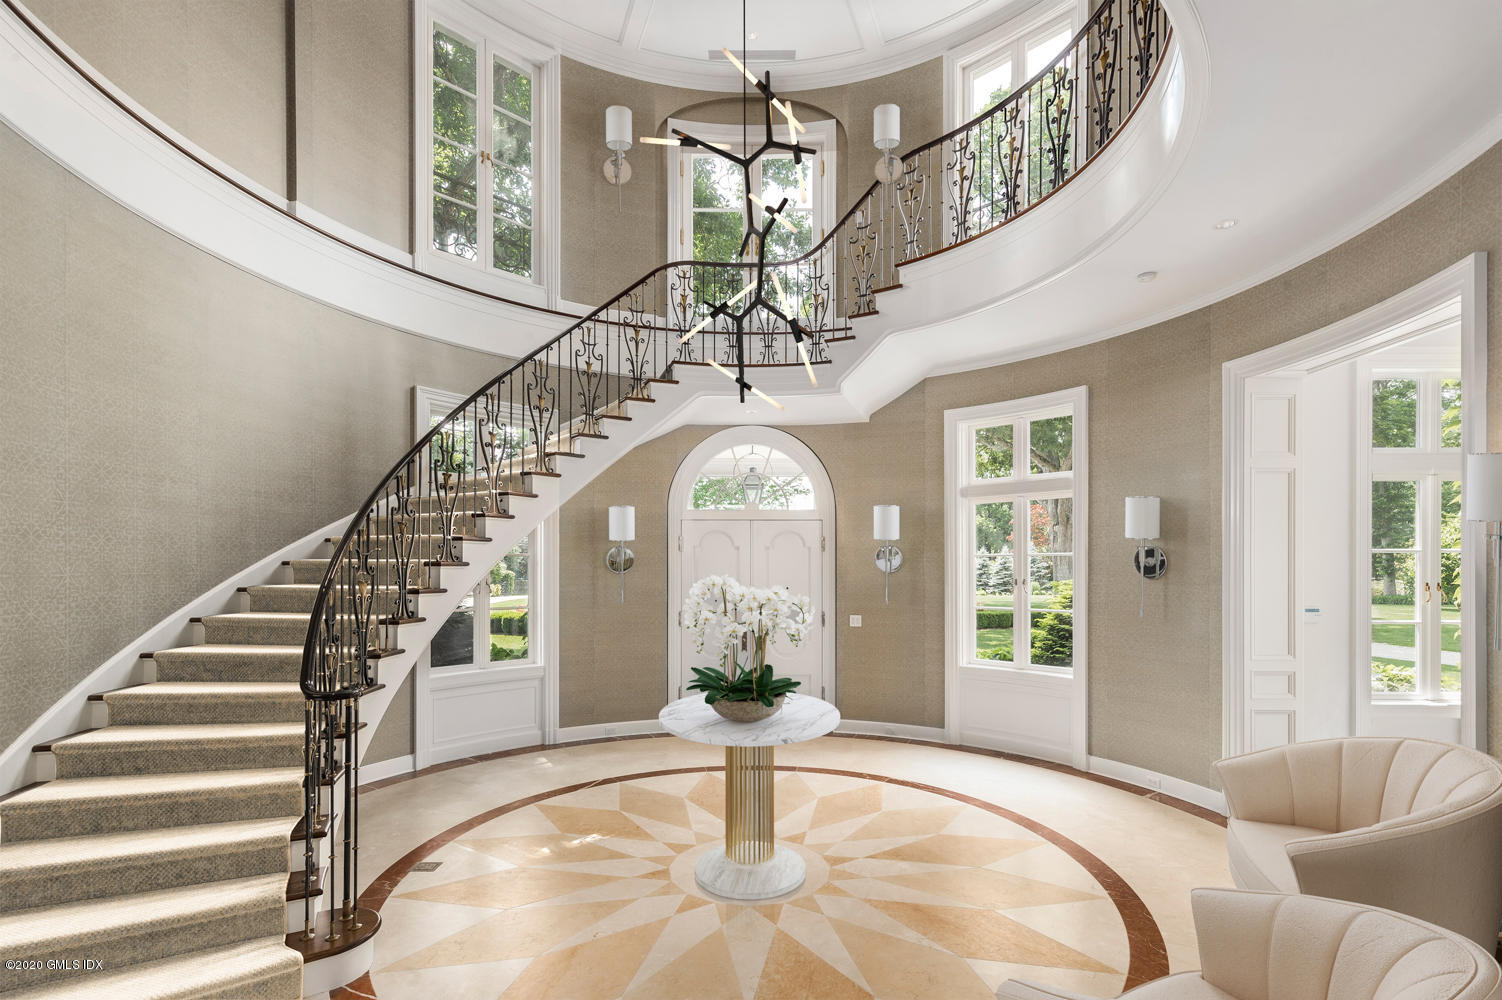 A Look Inside Amarpali: A $24.9M French Country Estate Now For Sale in Greenwich, CT